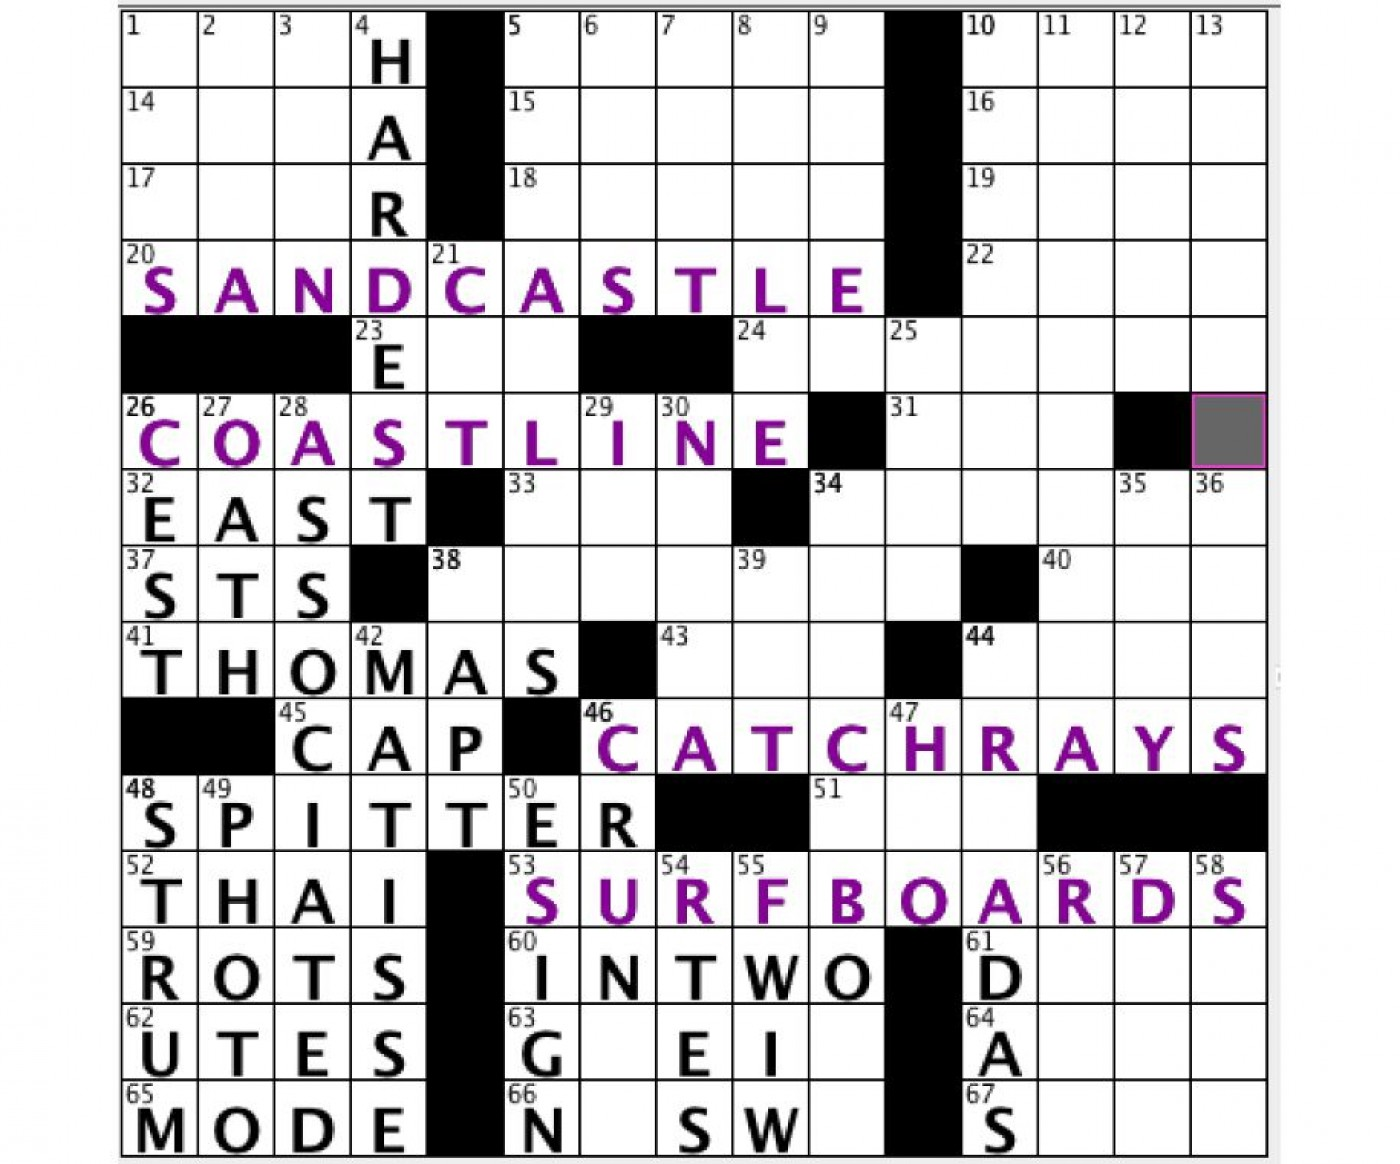 000 Unforgettable Robust Crossword Clue Sample  Strong Drink 6 Letter Reliable Nyt Vigorou 81400